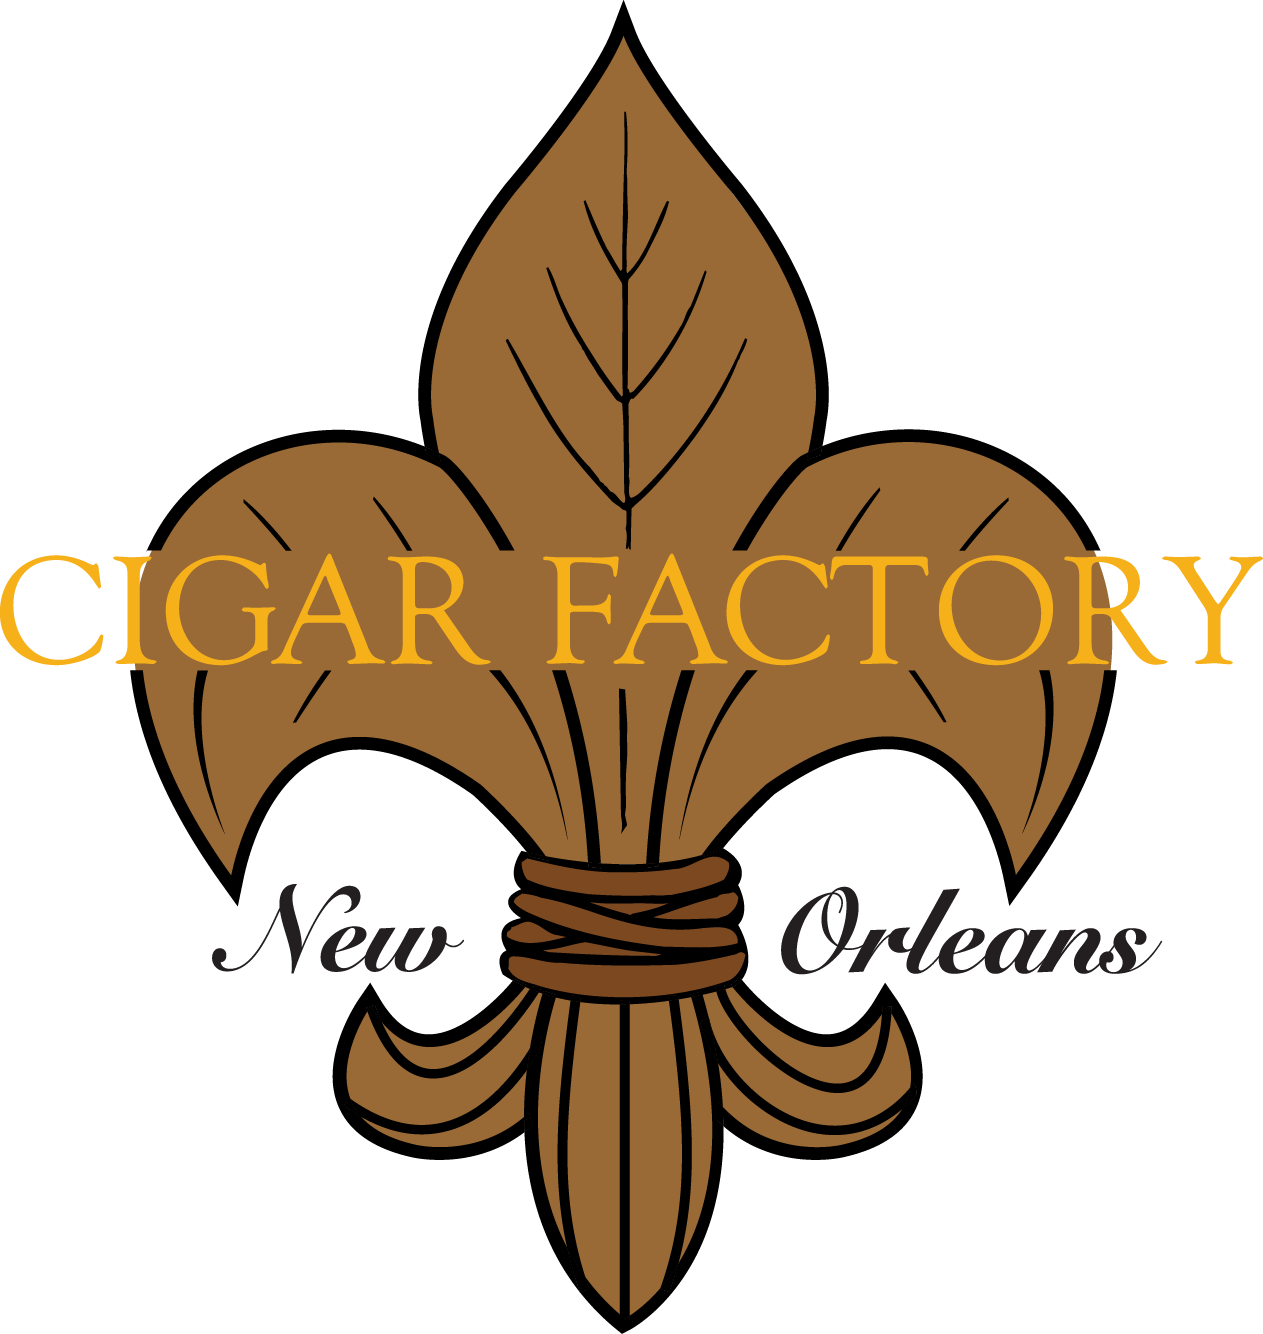 Factory new orleans cb. Cigar clipart scotch whiskey